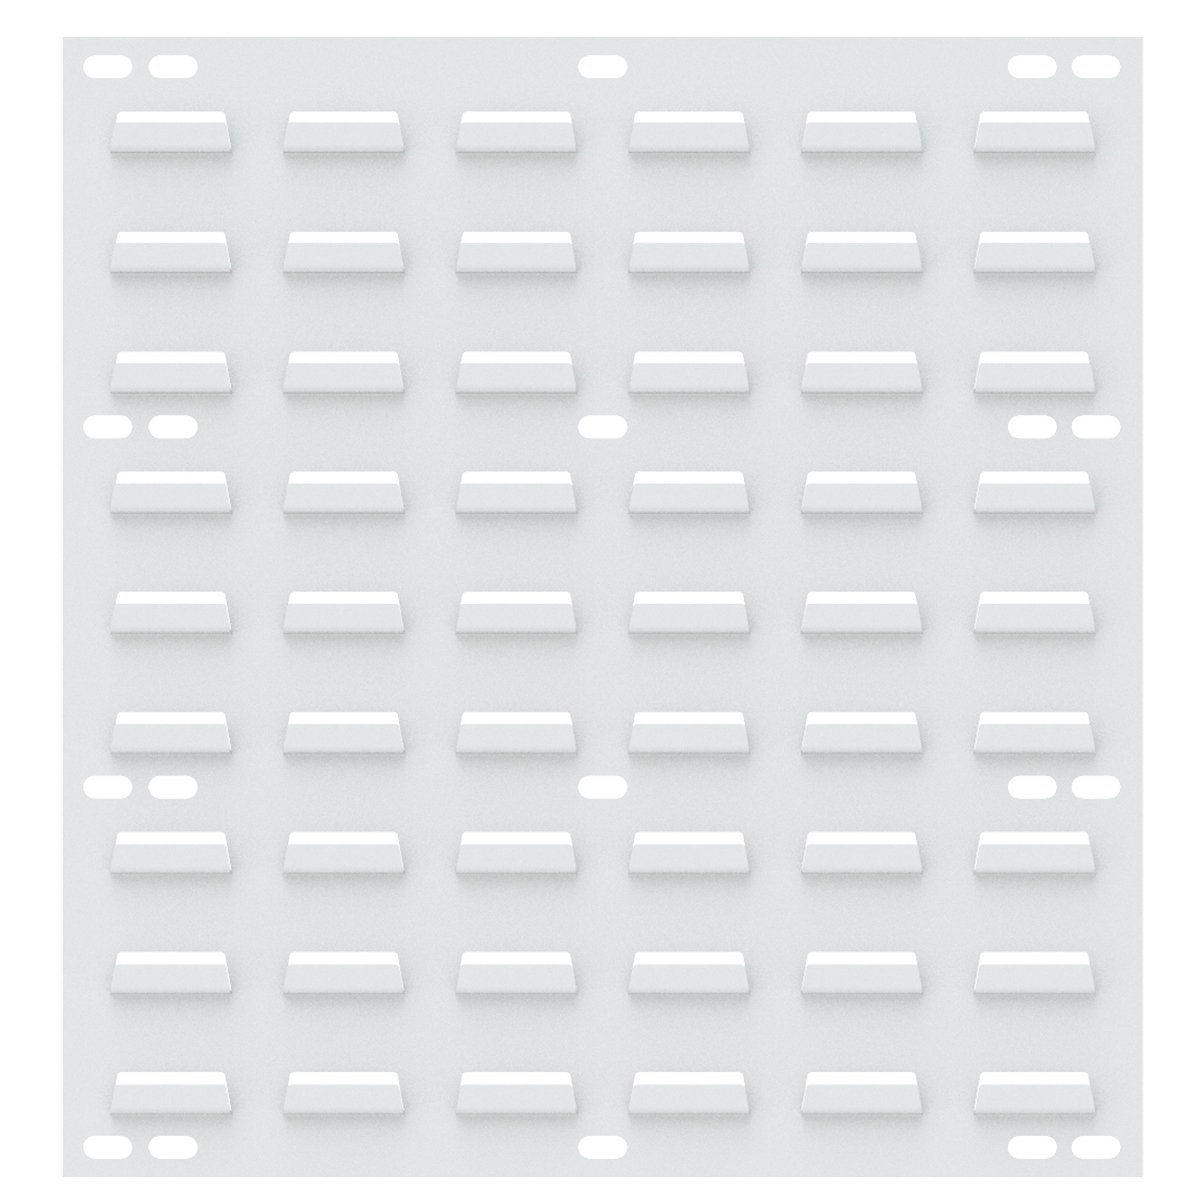 Textured White 18 x 19 4 Pack 18 x 19 Akro-Mils 30618TEXWHT Wall Louvered Panel